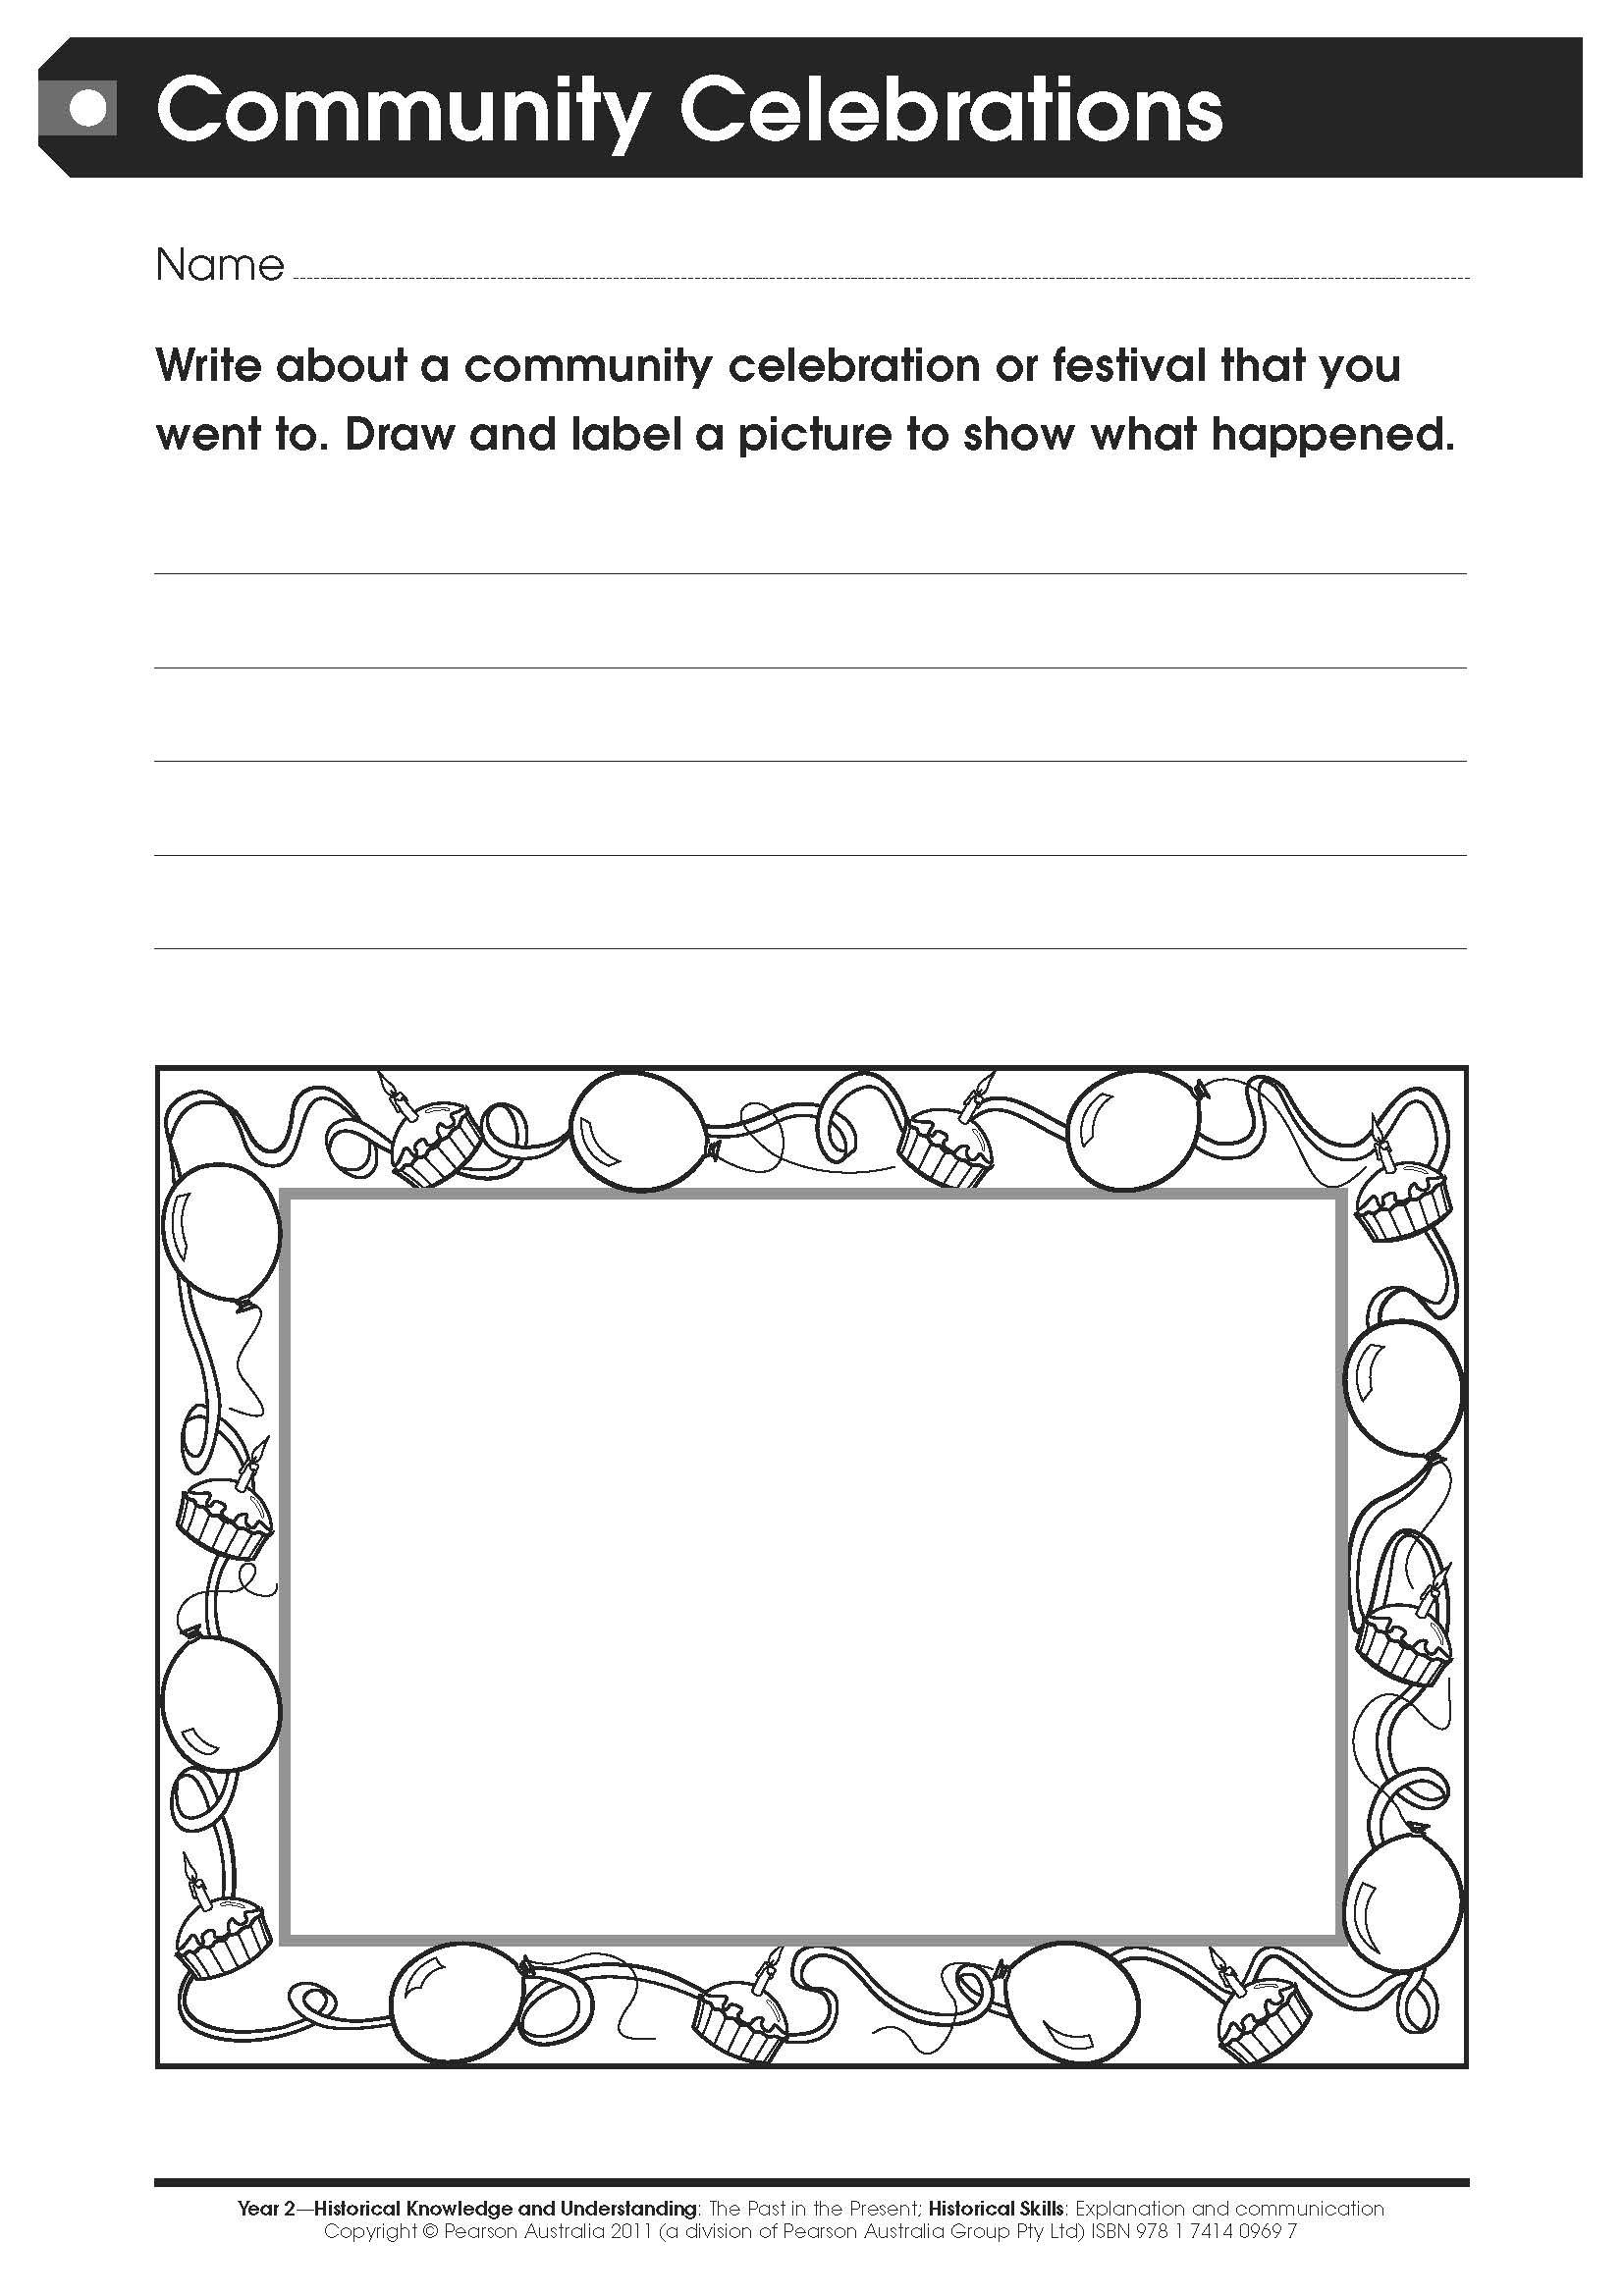 Worksheet Kindergarten Celebration